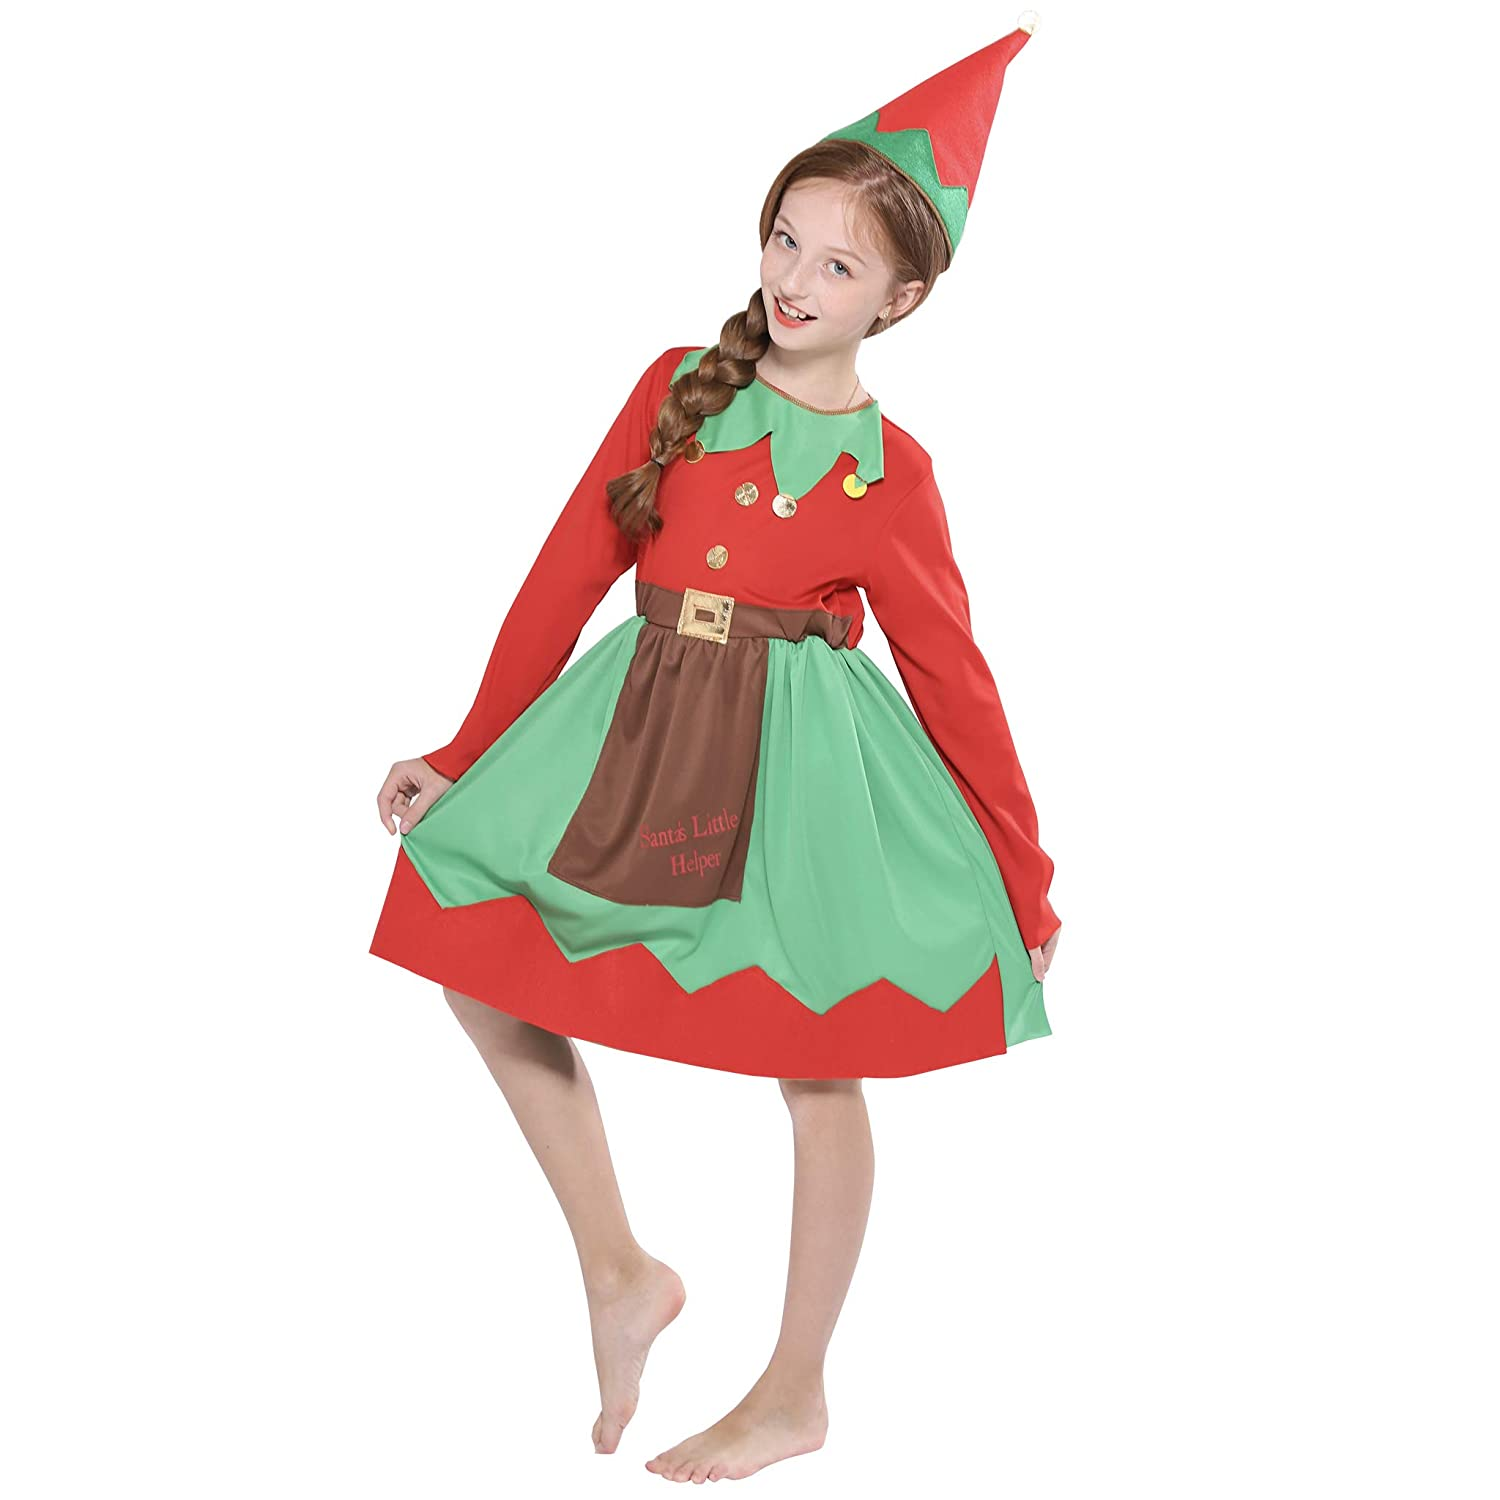 40e1f3a8ab36f Amazon.com: FantastCostumes Kids Girl Christmas Elf Costumes Party Fancy  Dress: Clothing